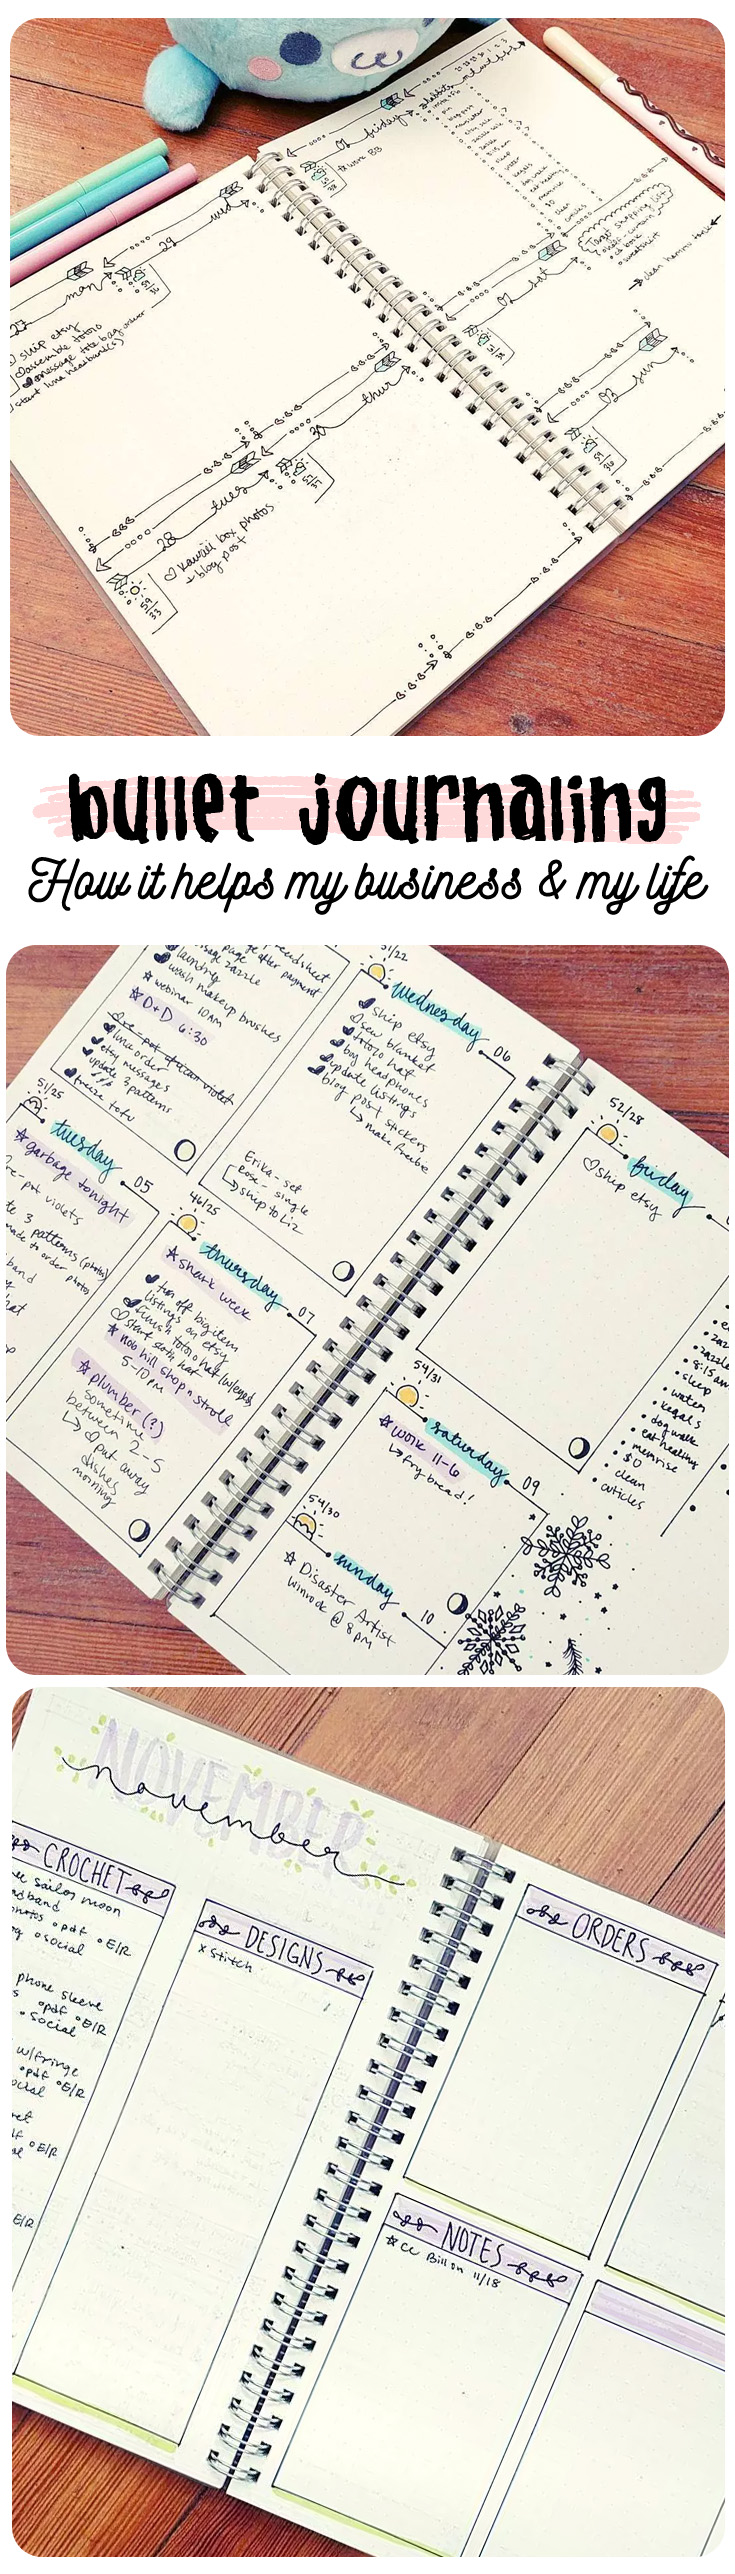 bullet-journal-helps-business-pin.jpg